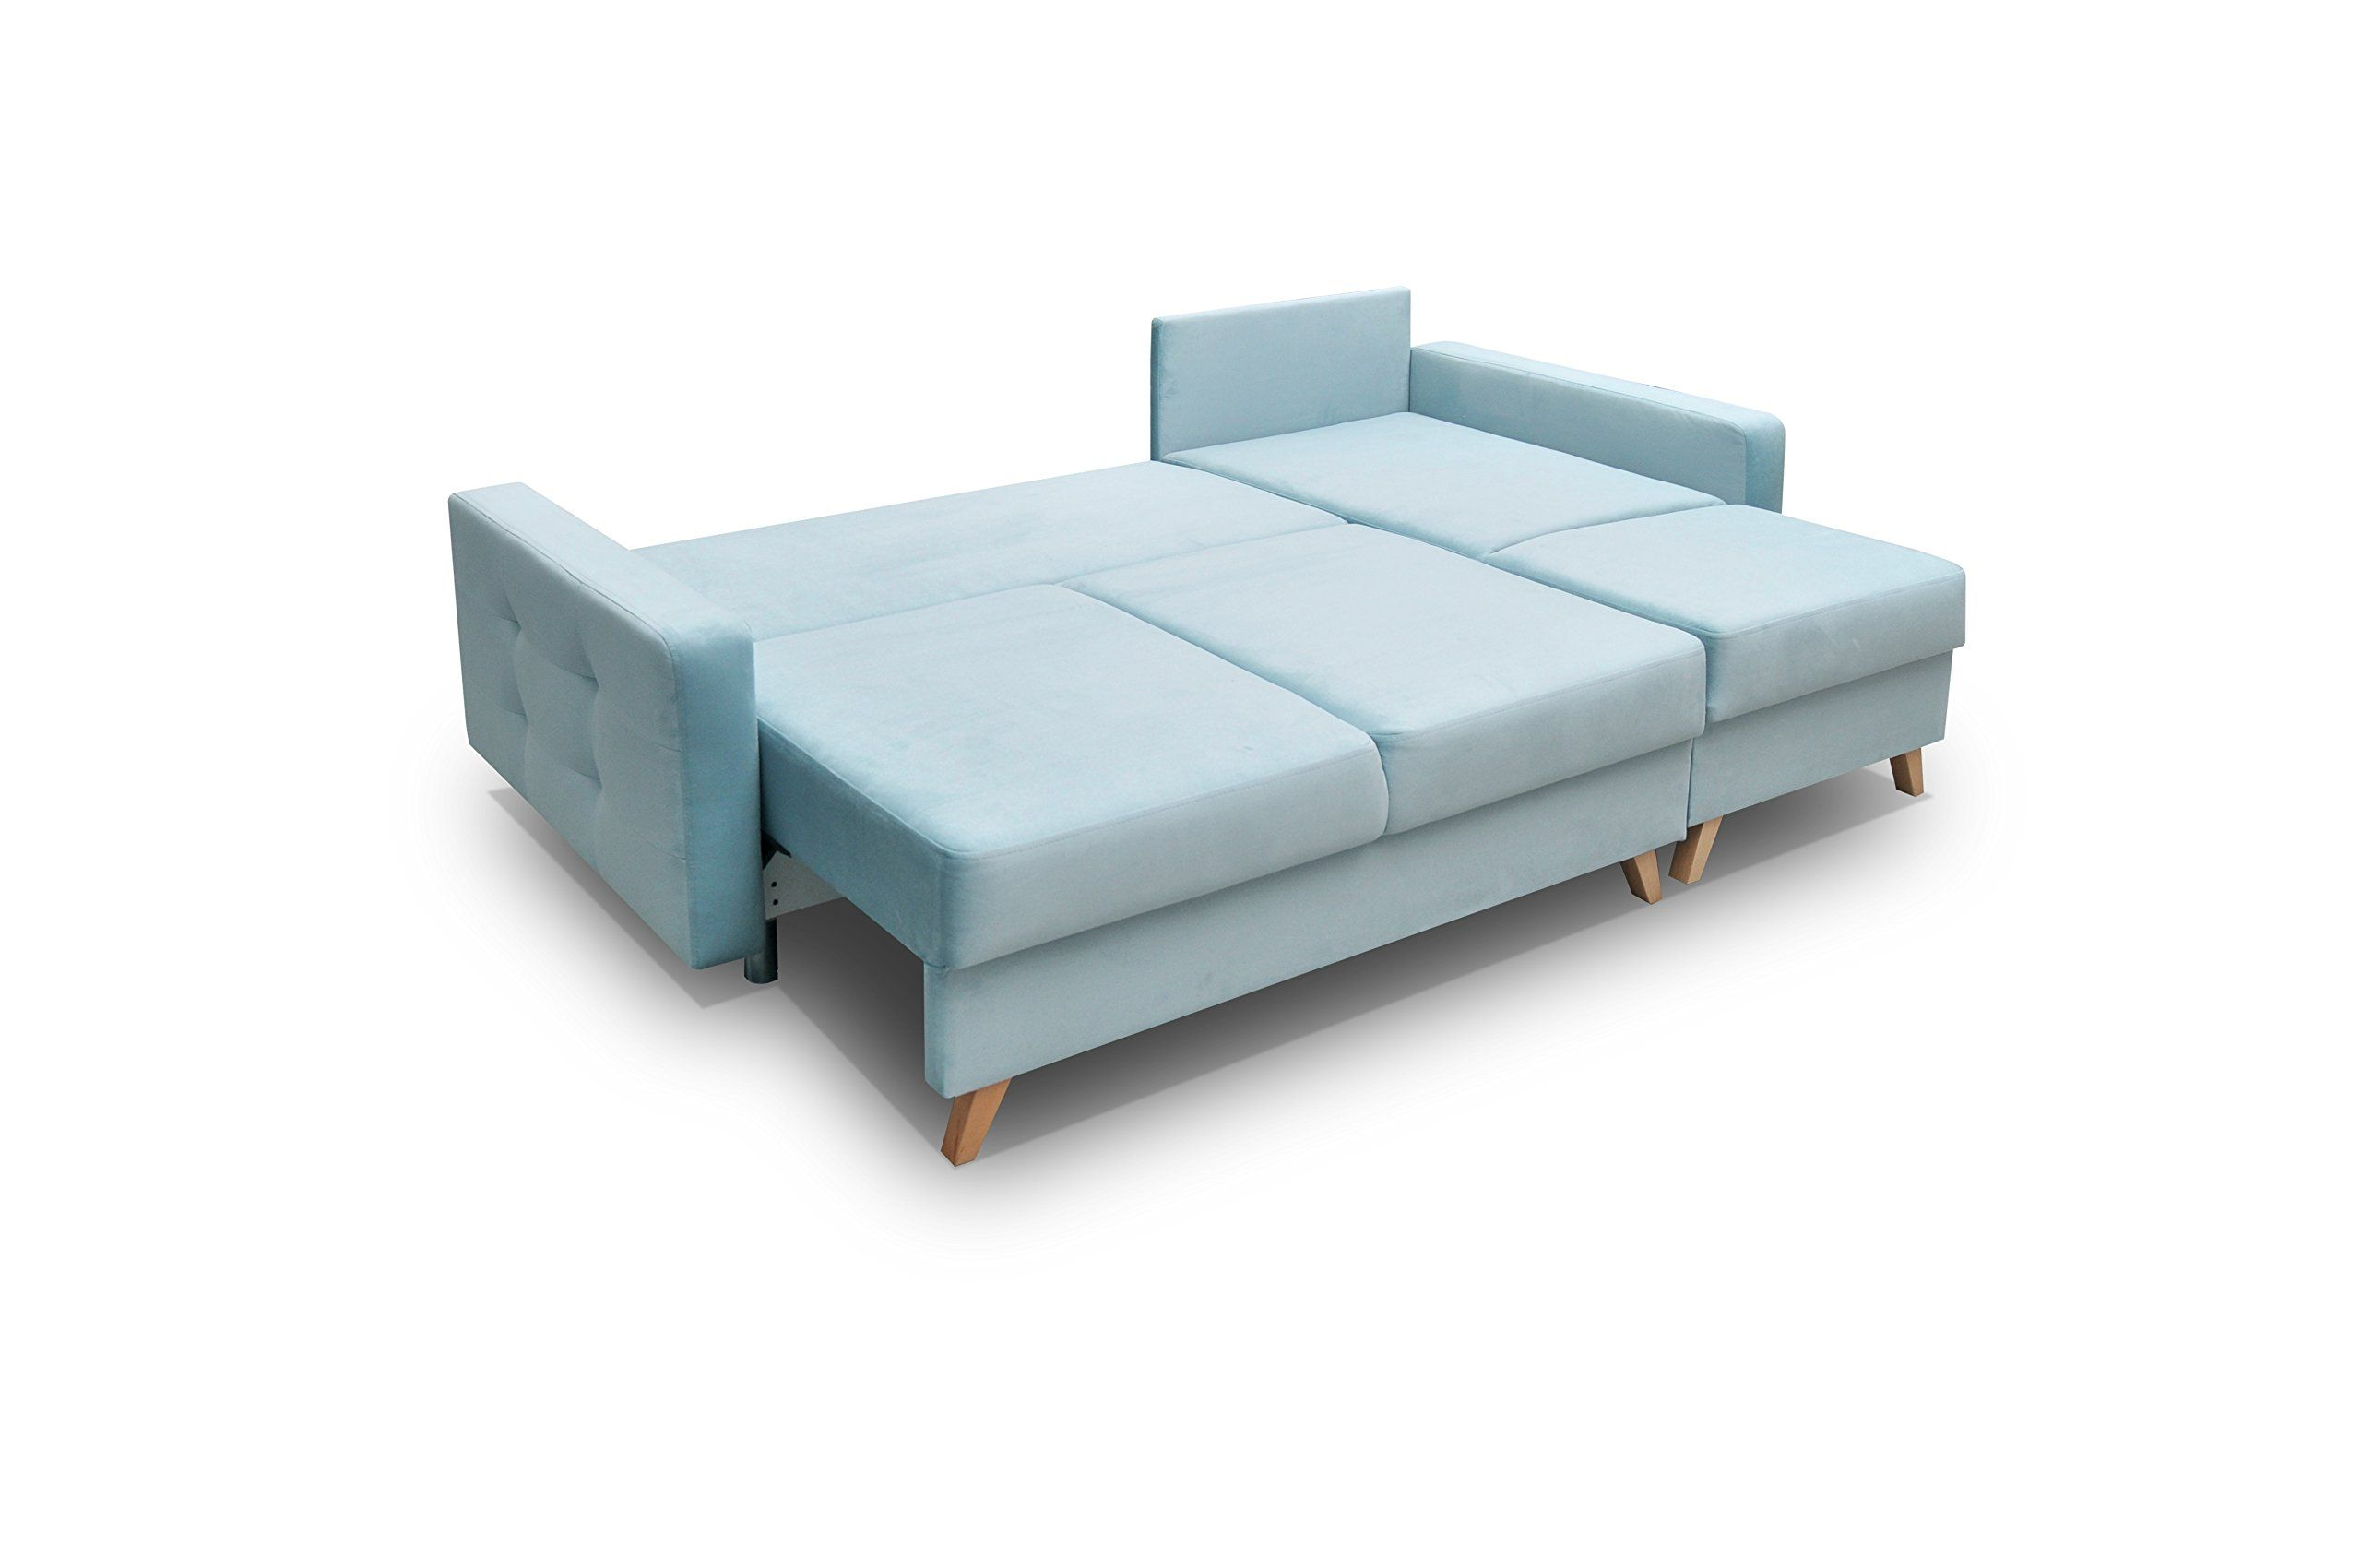 Meble Furniture And Rugs Vegas Futon Sectional Sofa Bed Queen Sleeper With Storage Blue Find Out More At The Futon Sectional Sofa Bed Queen Sectional Sofa